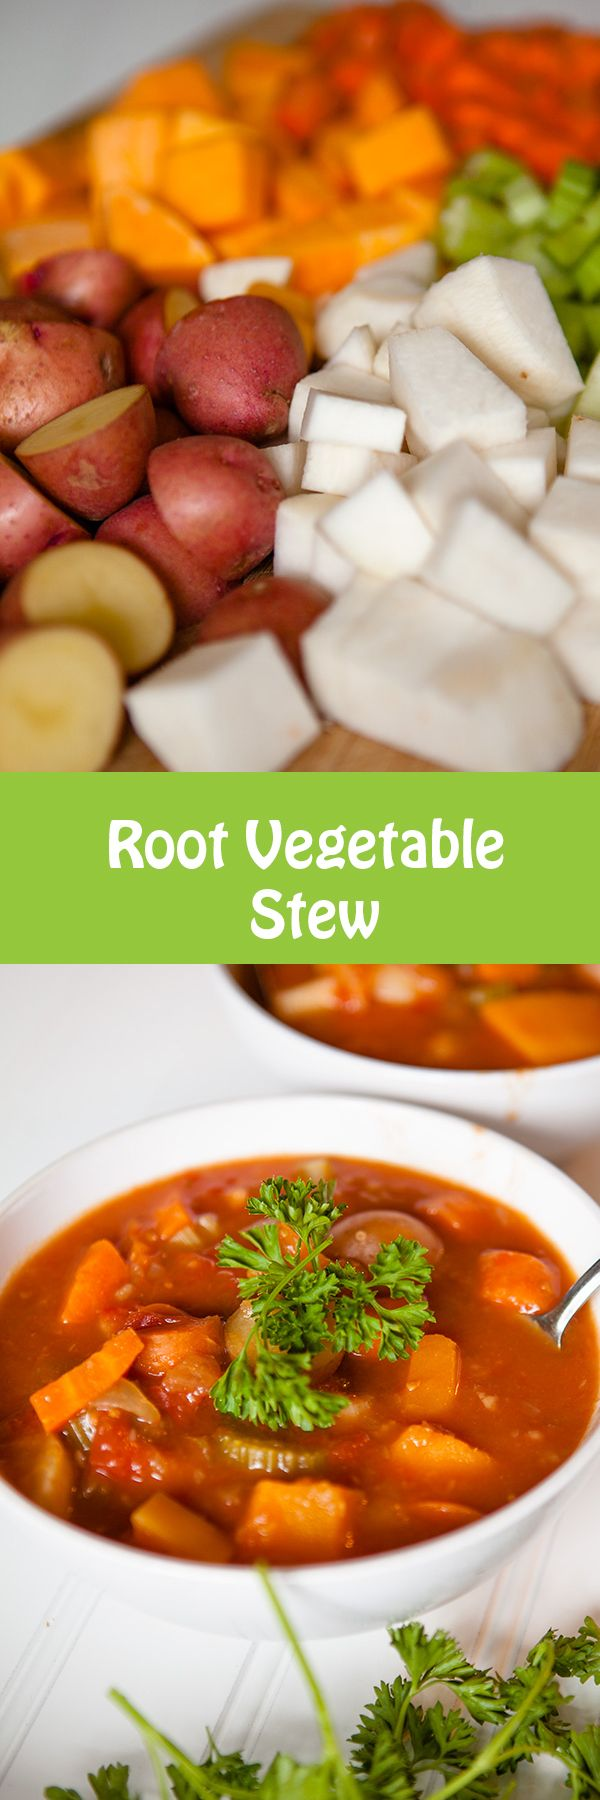 Vegan Root Vegetable Stew